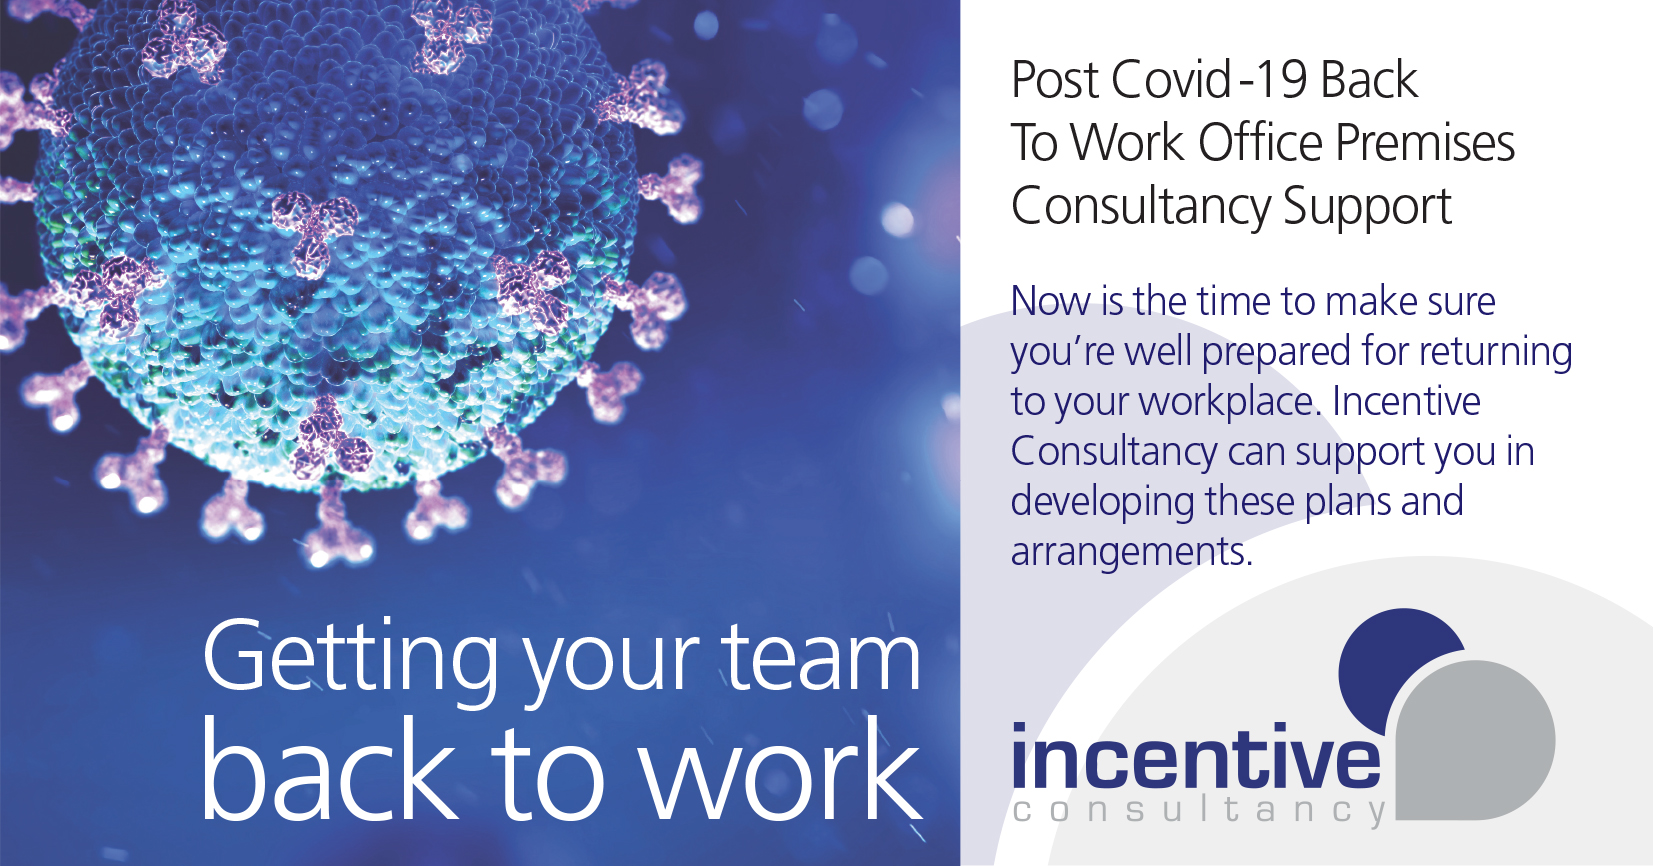 Getting your team back to work